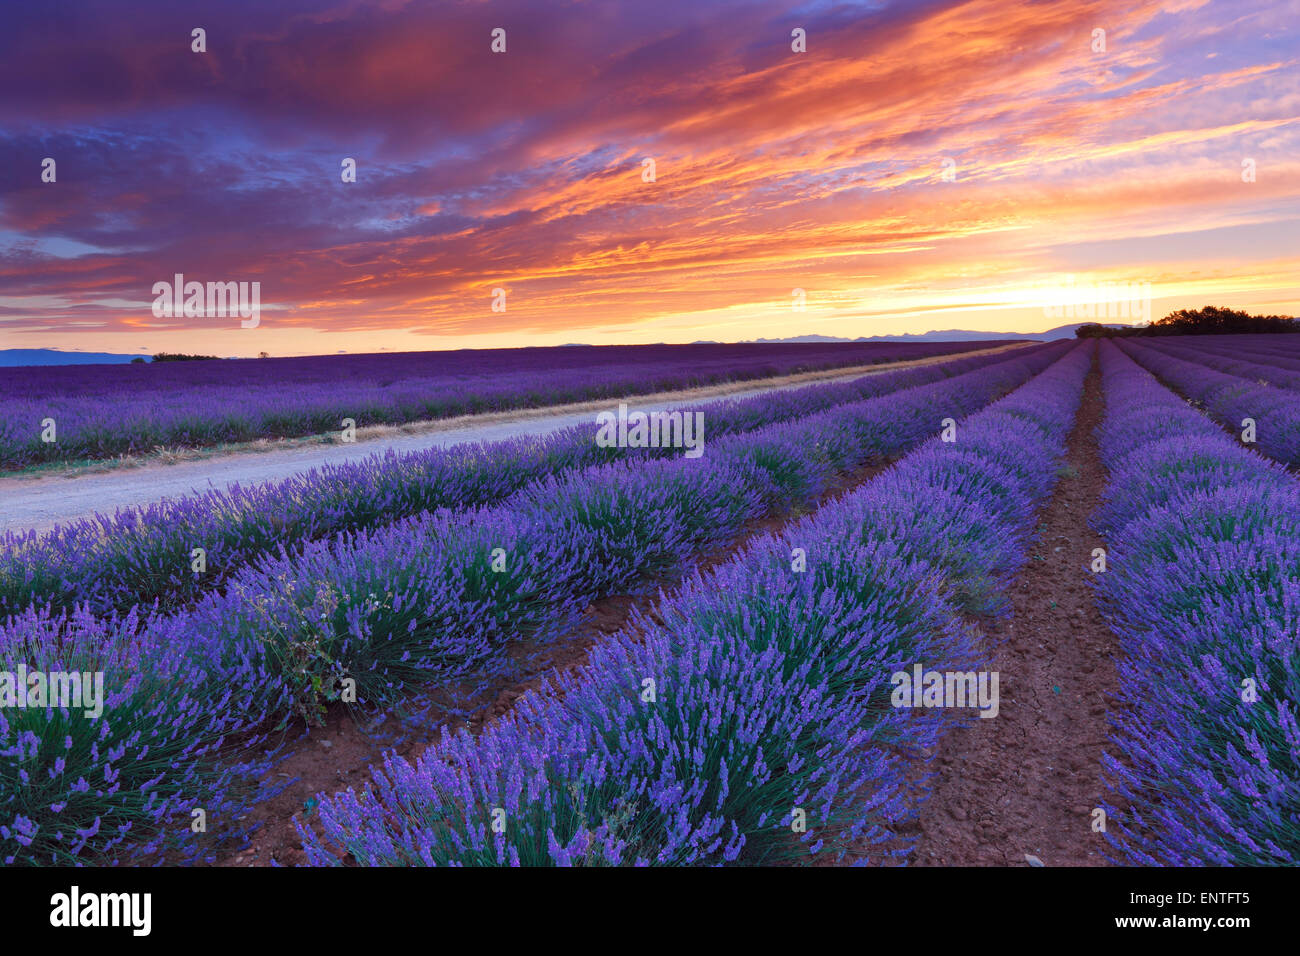 Sunrise over lavender field in Valensole, Provence, France - Stock Image